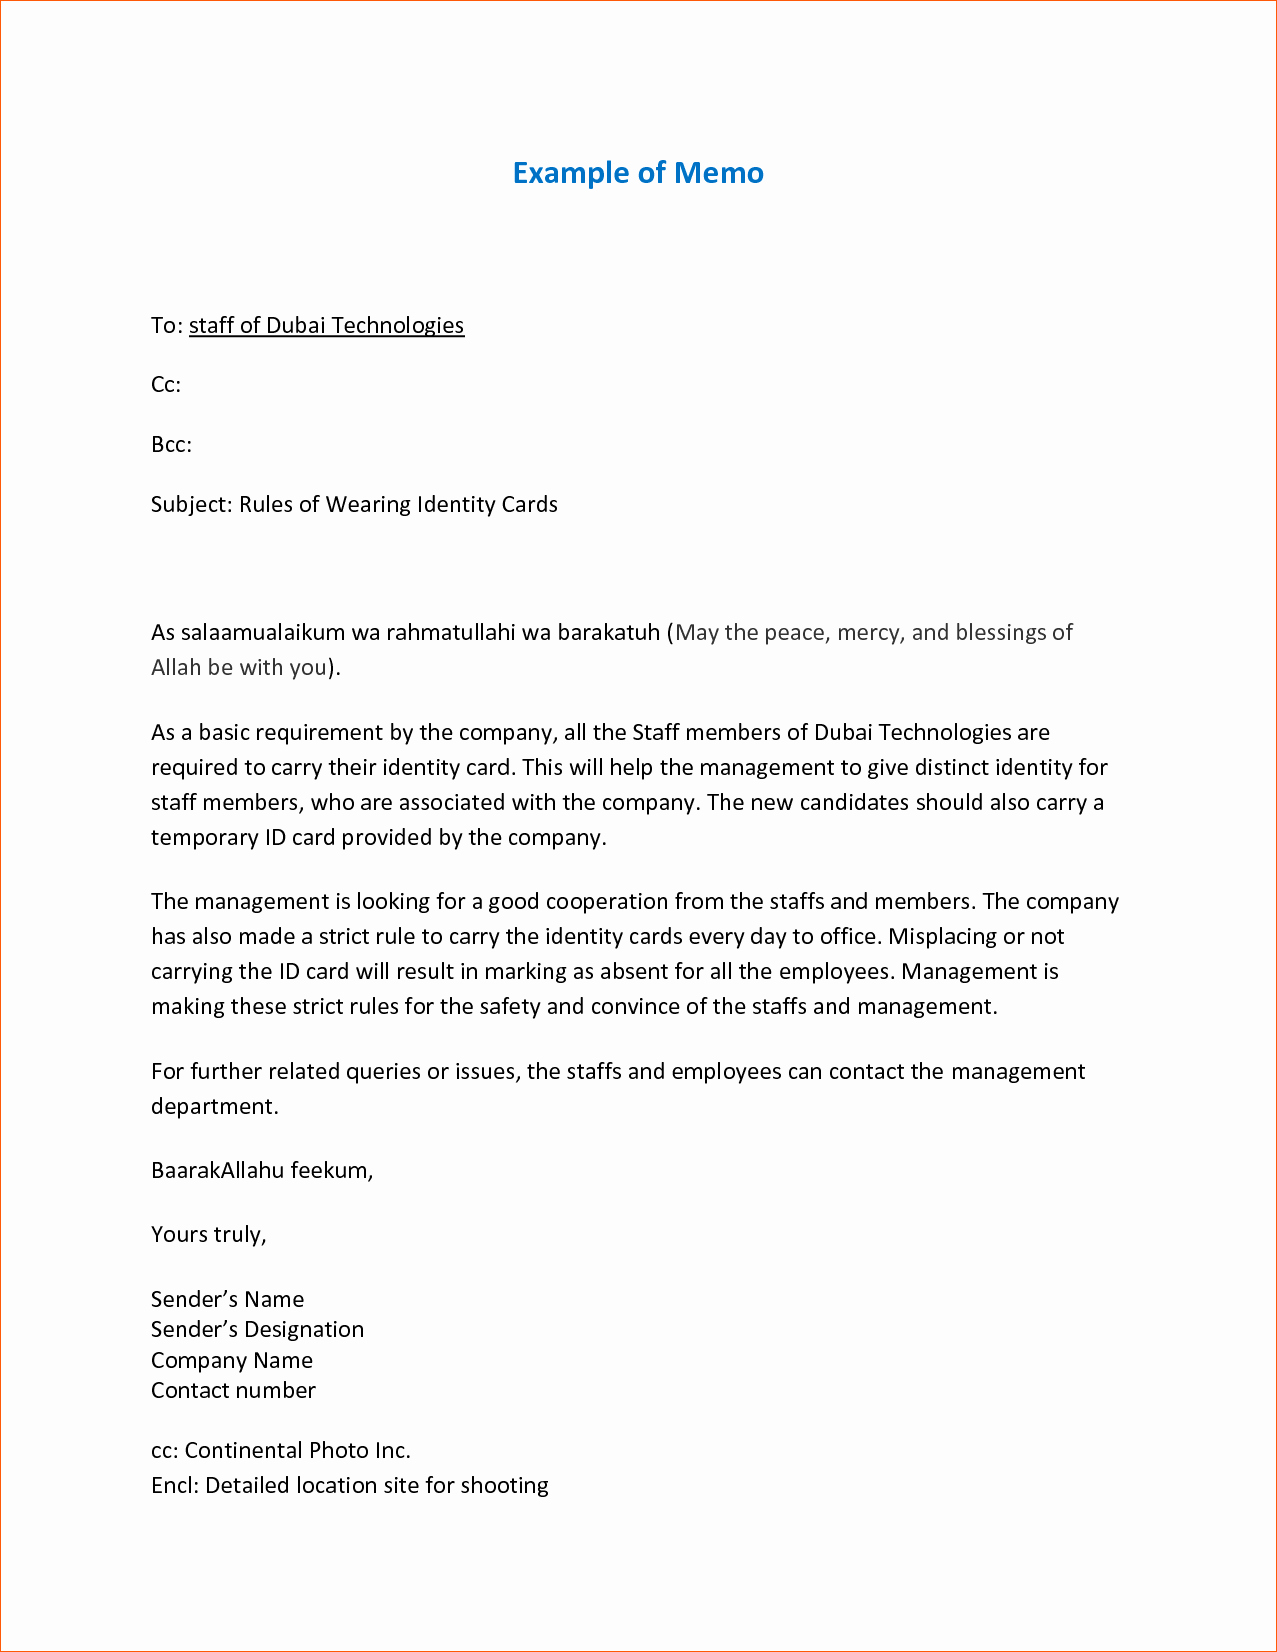 Example Of A Memo format Awesome 9 Sample Memo